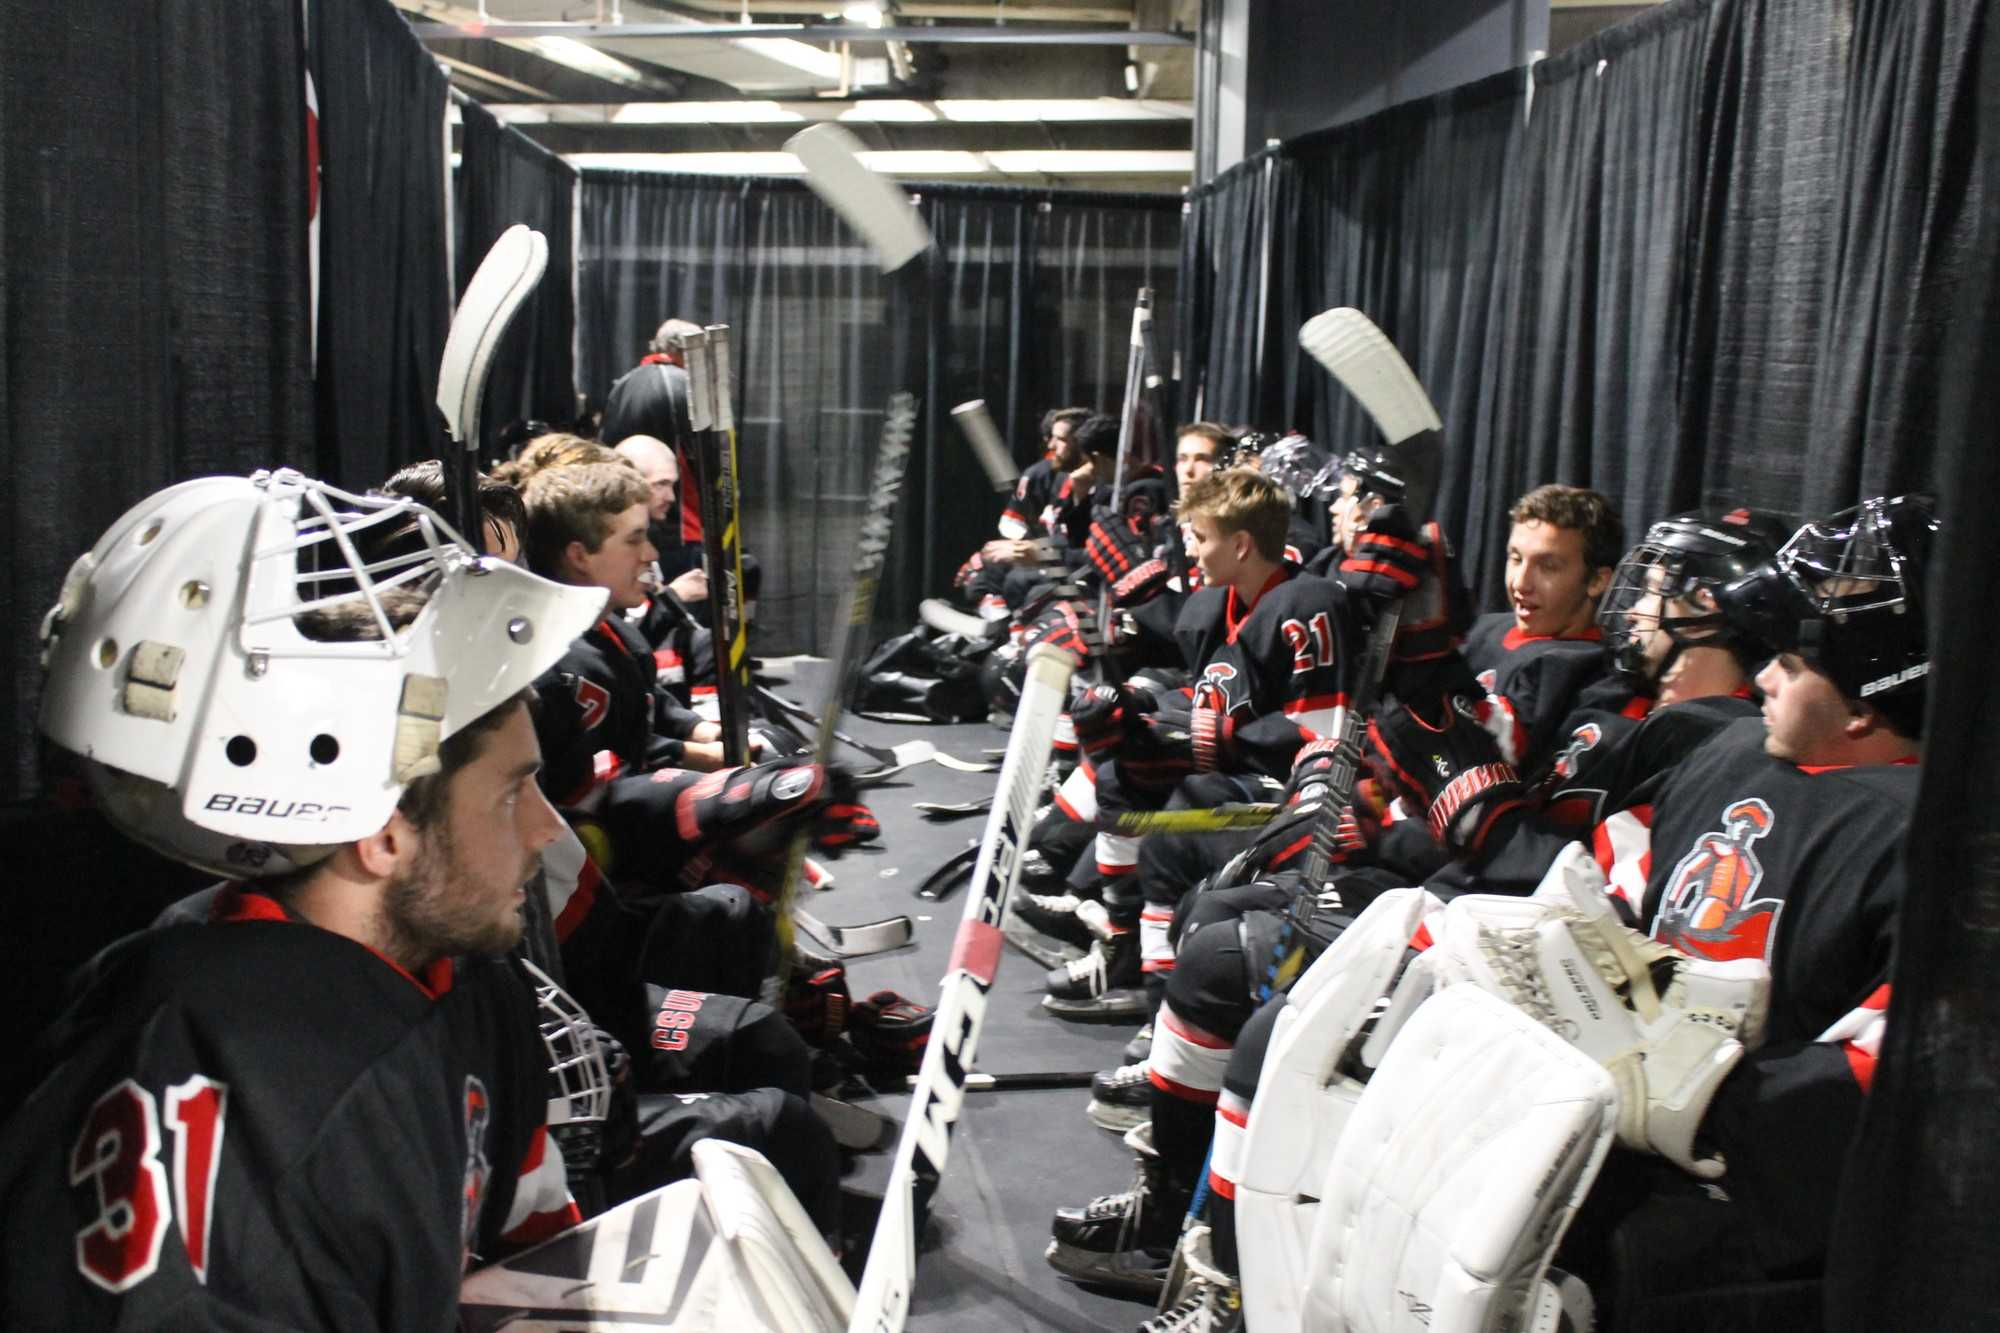 matador hockey team sits together before game